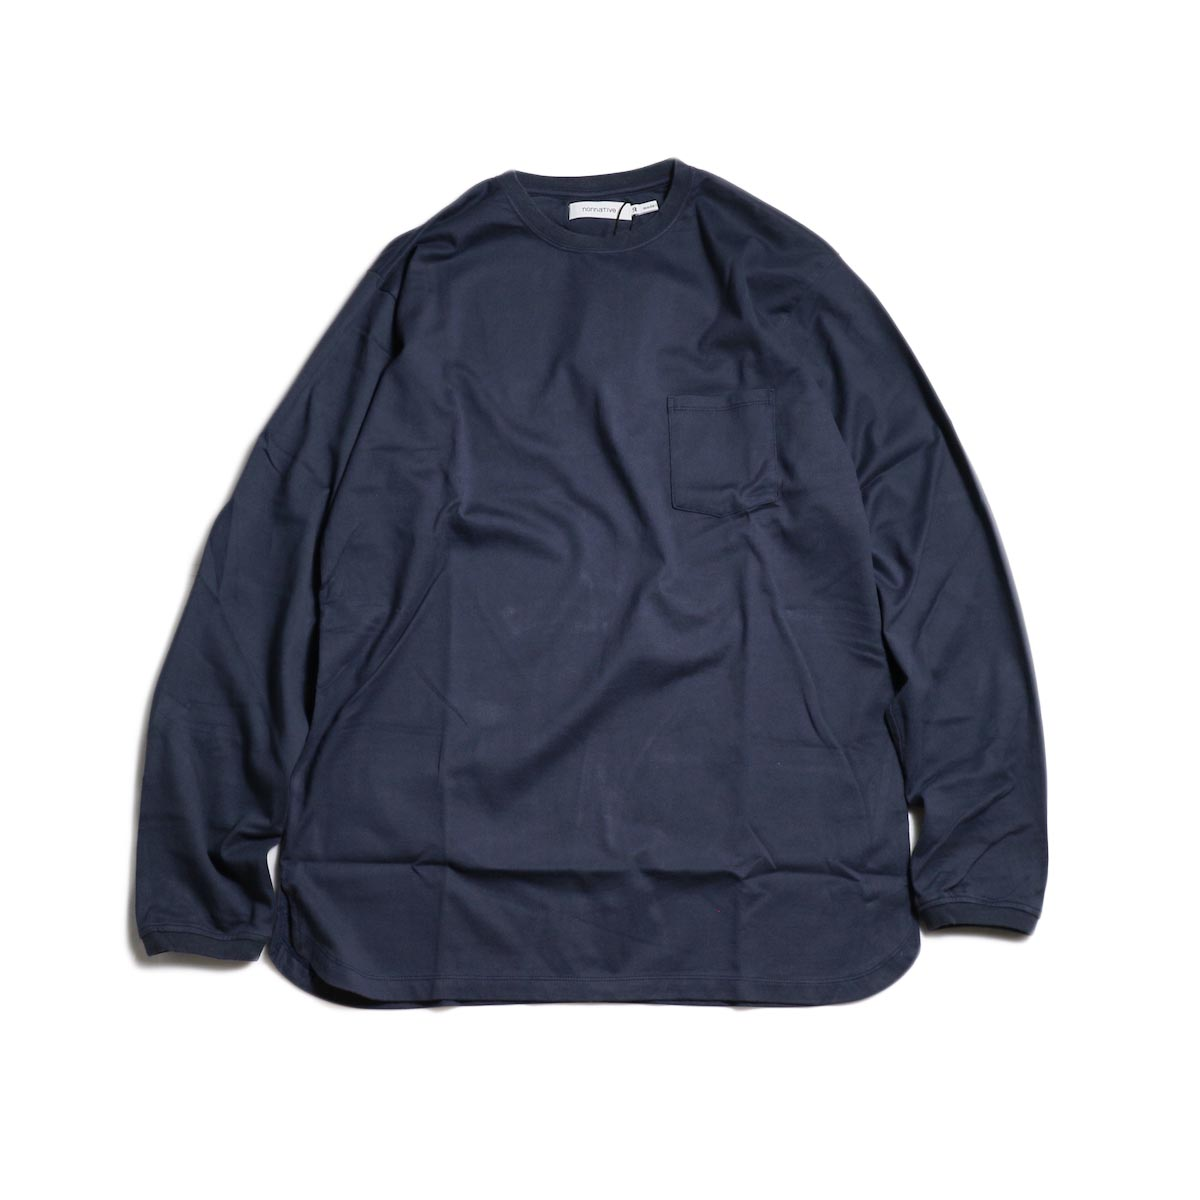 nonnative / DWELLER L/S TEE COTTON JERSEY -Navy